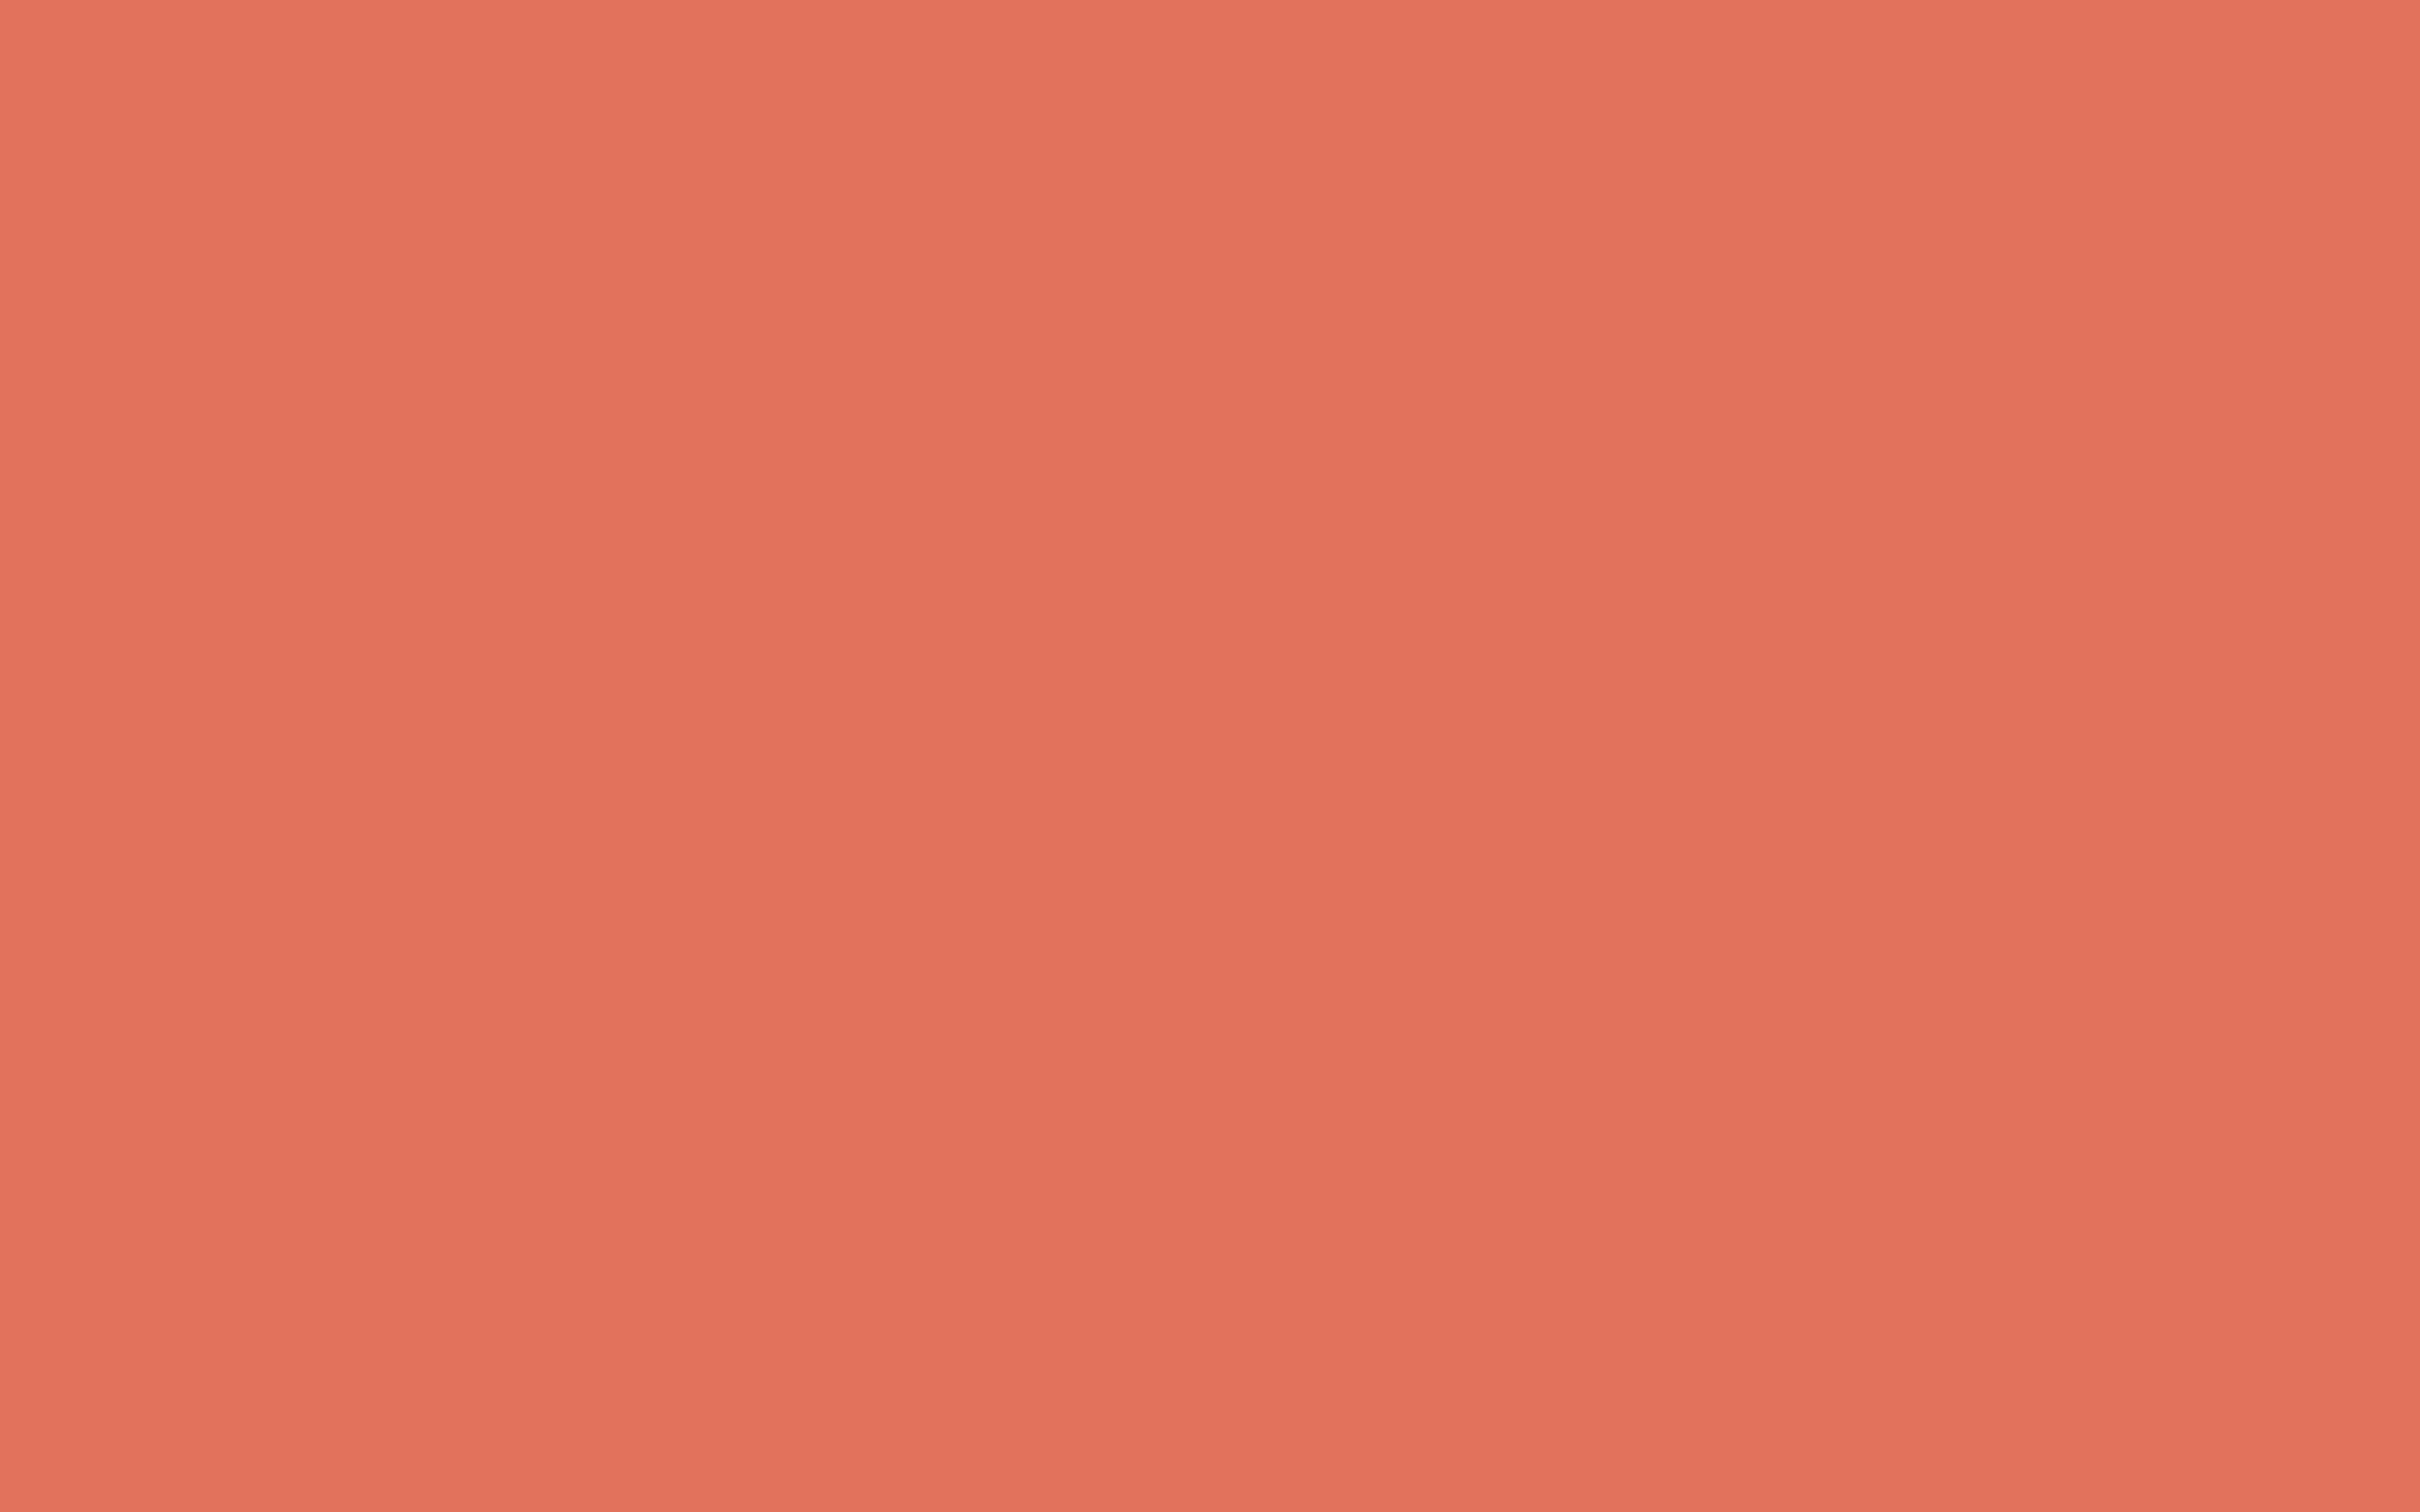 2560x1600 Terra Cotta Solid Color Background